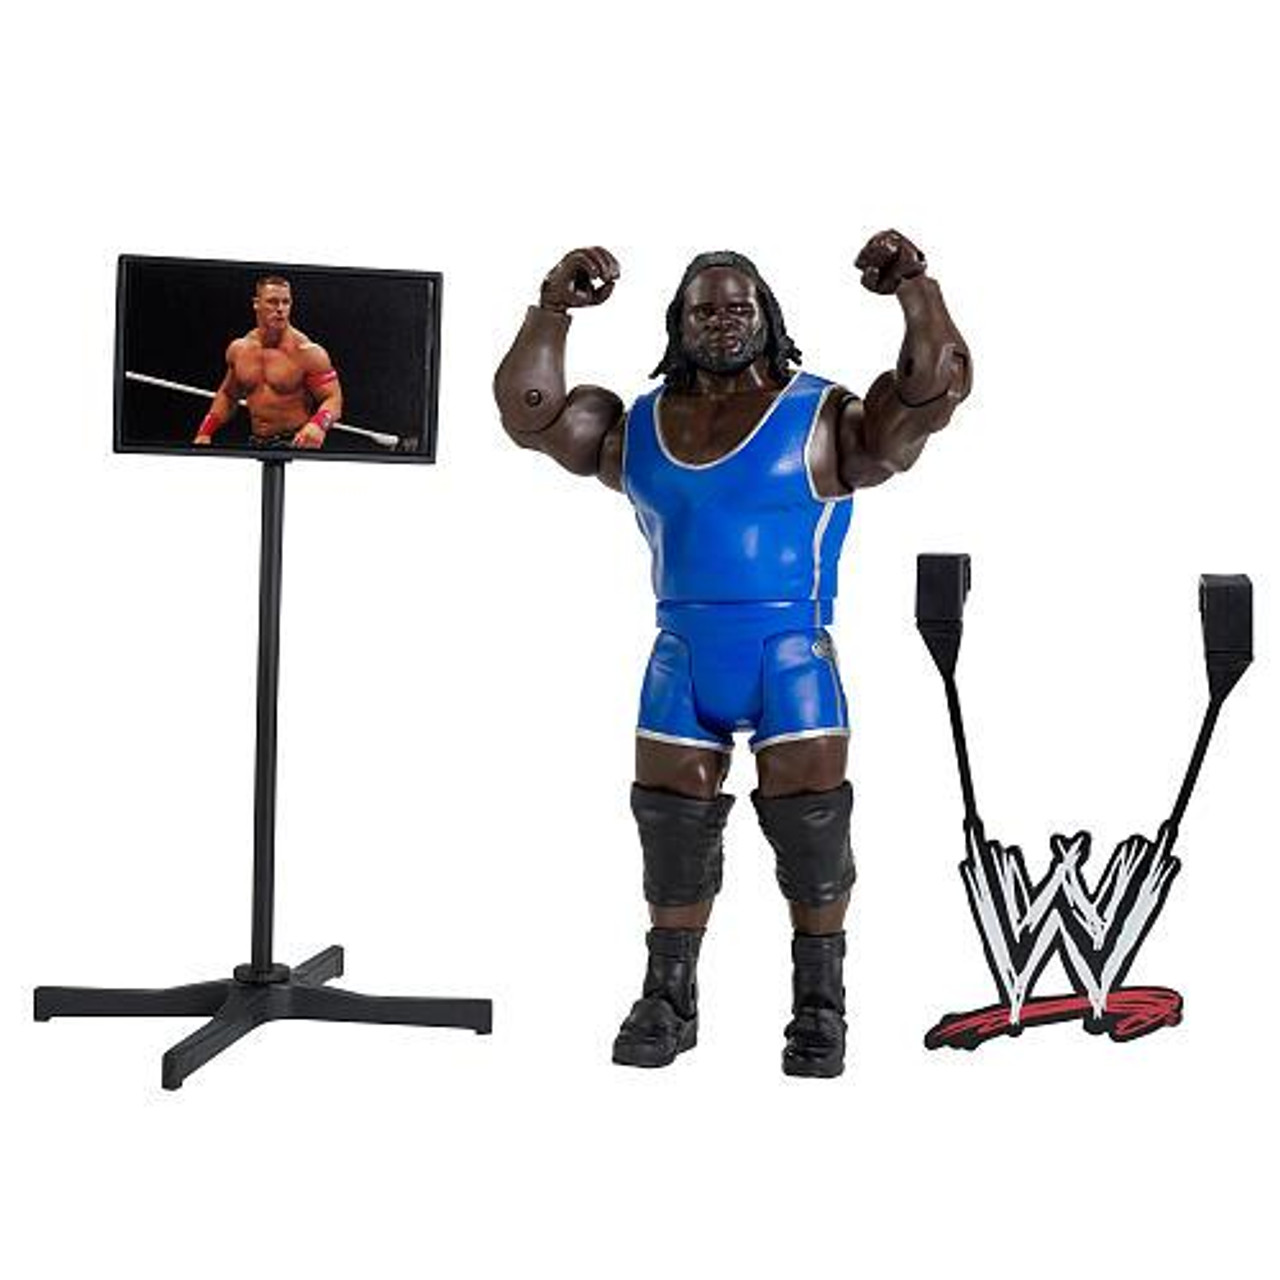 WWE Wrestling PPV Headquarters Mark Henry Exclusive Action Figure [Build a WWE Interview Set]